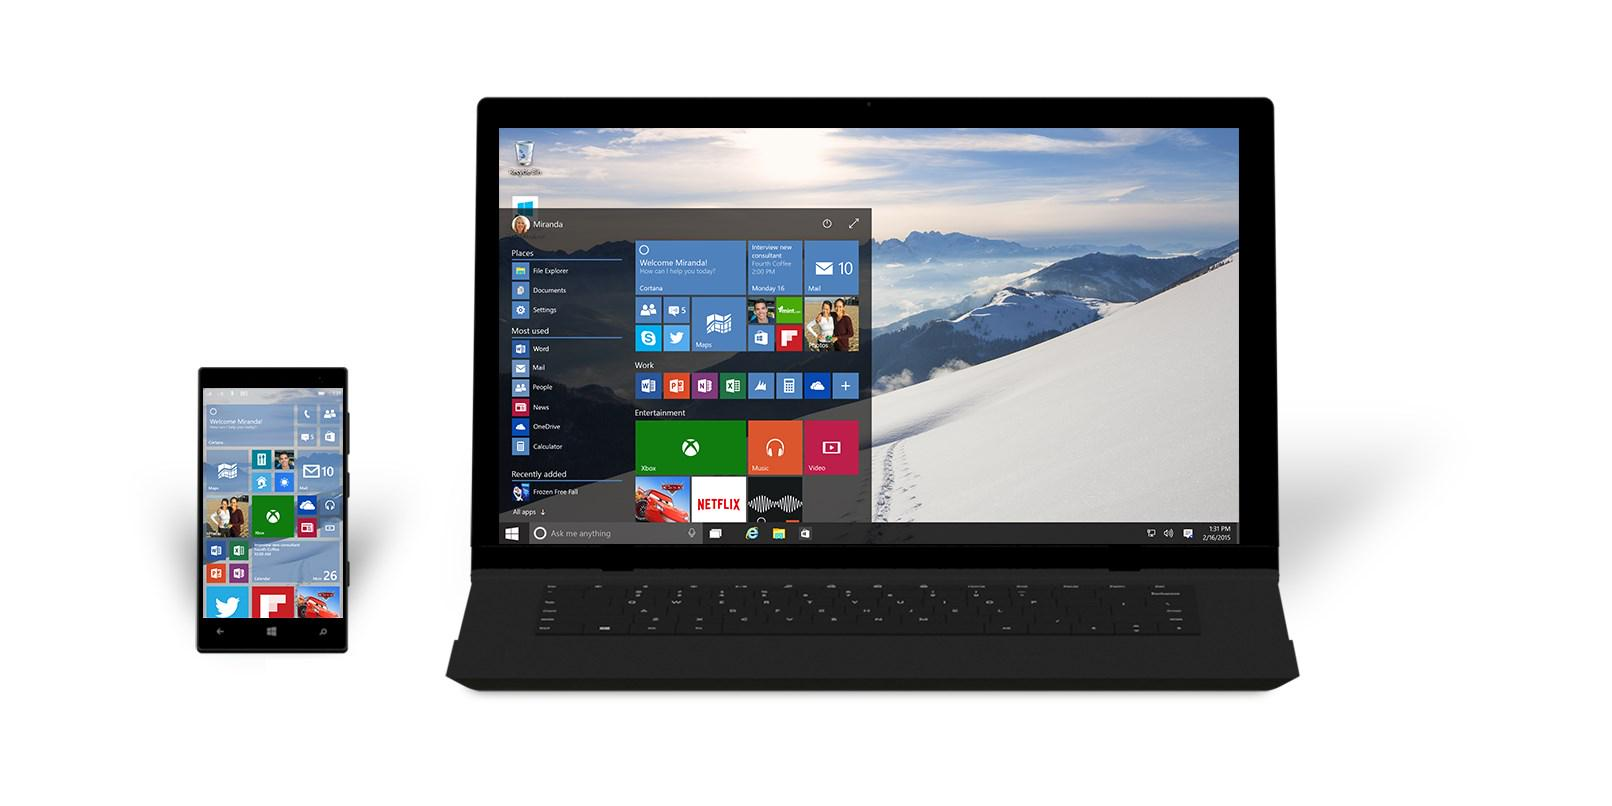 RT @TheNextWeb: You probably won't get Windows 10 on July 29, even if you reserved your copy http://t.co/gzSjXxUggm http://t.co/PK4qnM37FM